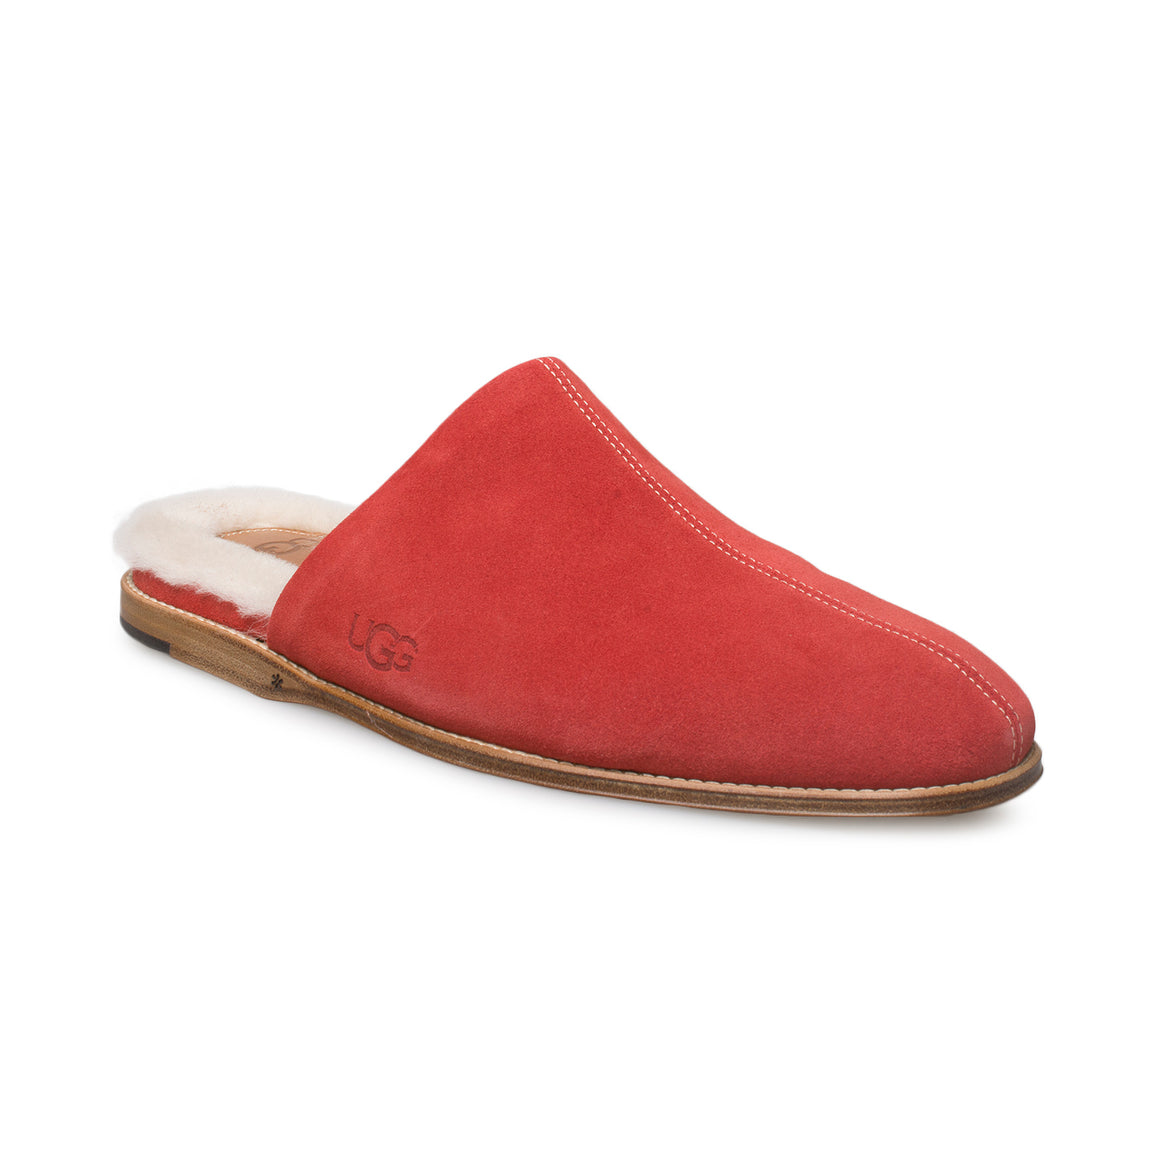 UGG Chateau Slip On Samba Red Slippers - Men's